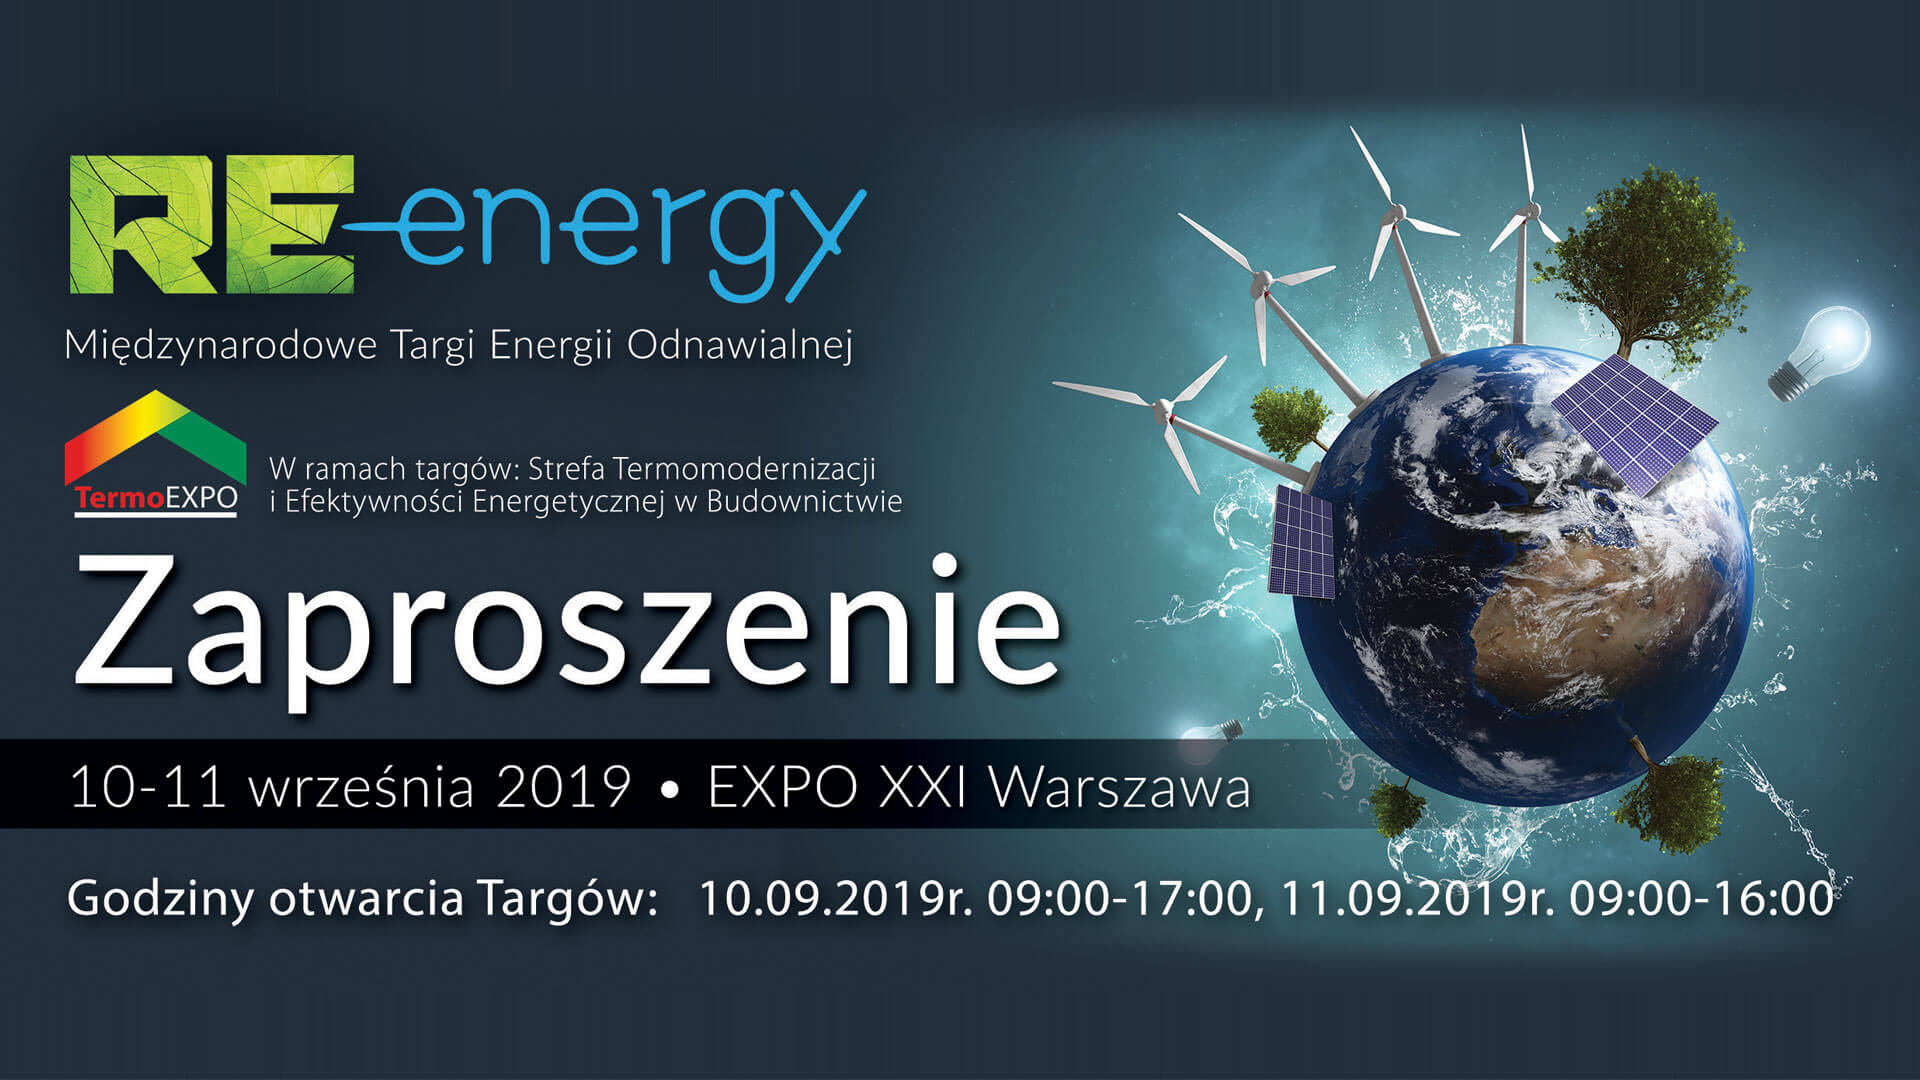 Internationale Messe für erneuerbare Energien RE-Energy